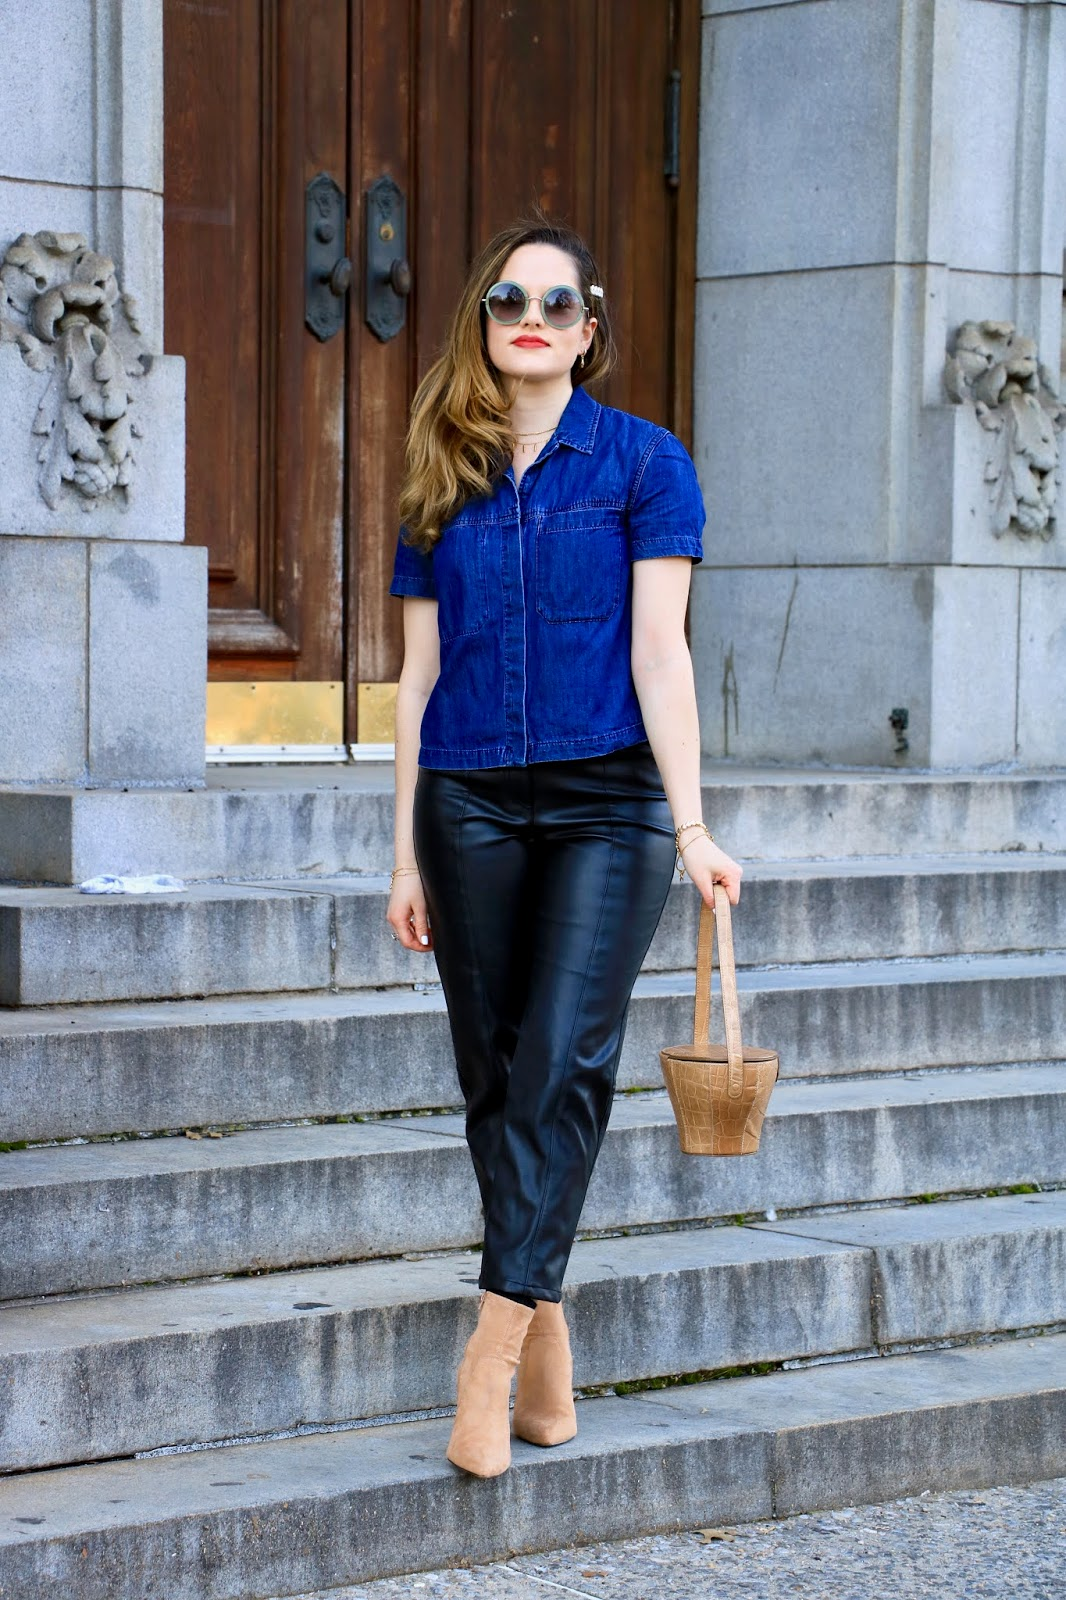 Nyc fashion blogger Kathleen Harper's 2020 spring street style.